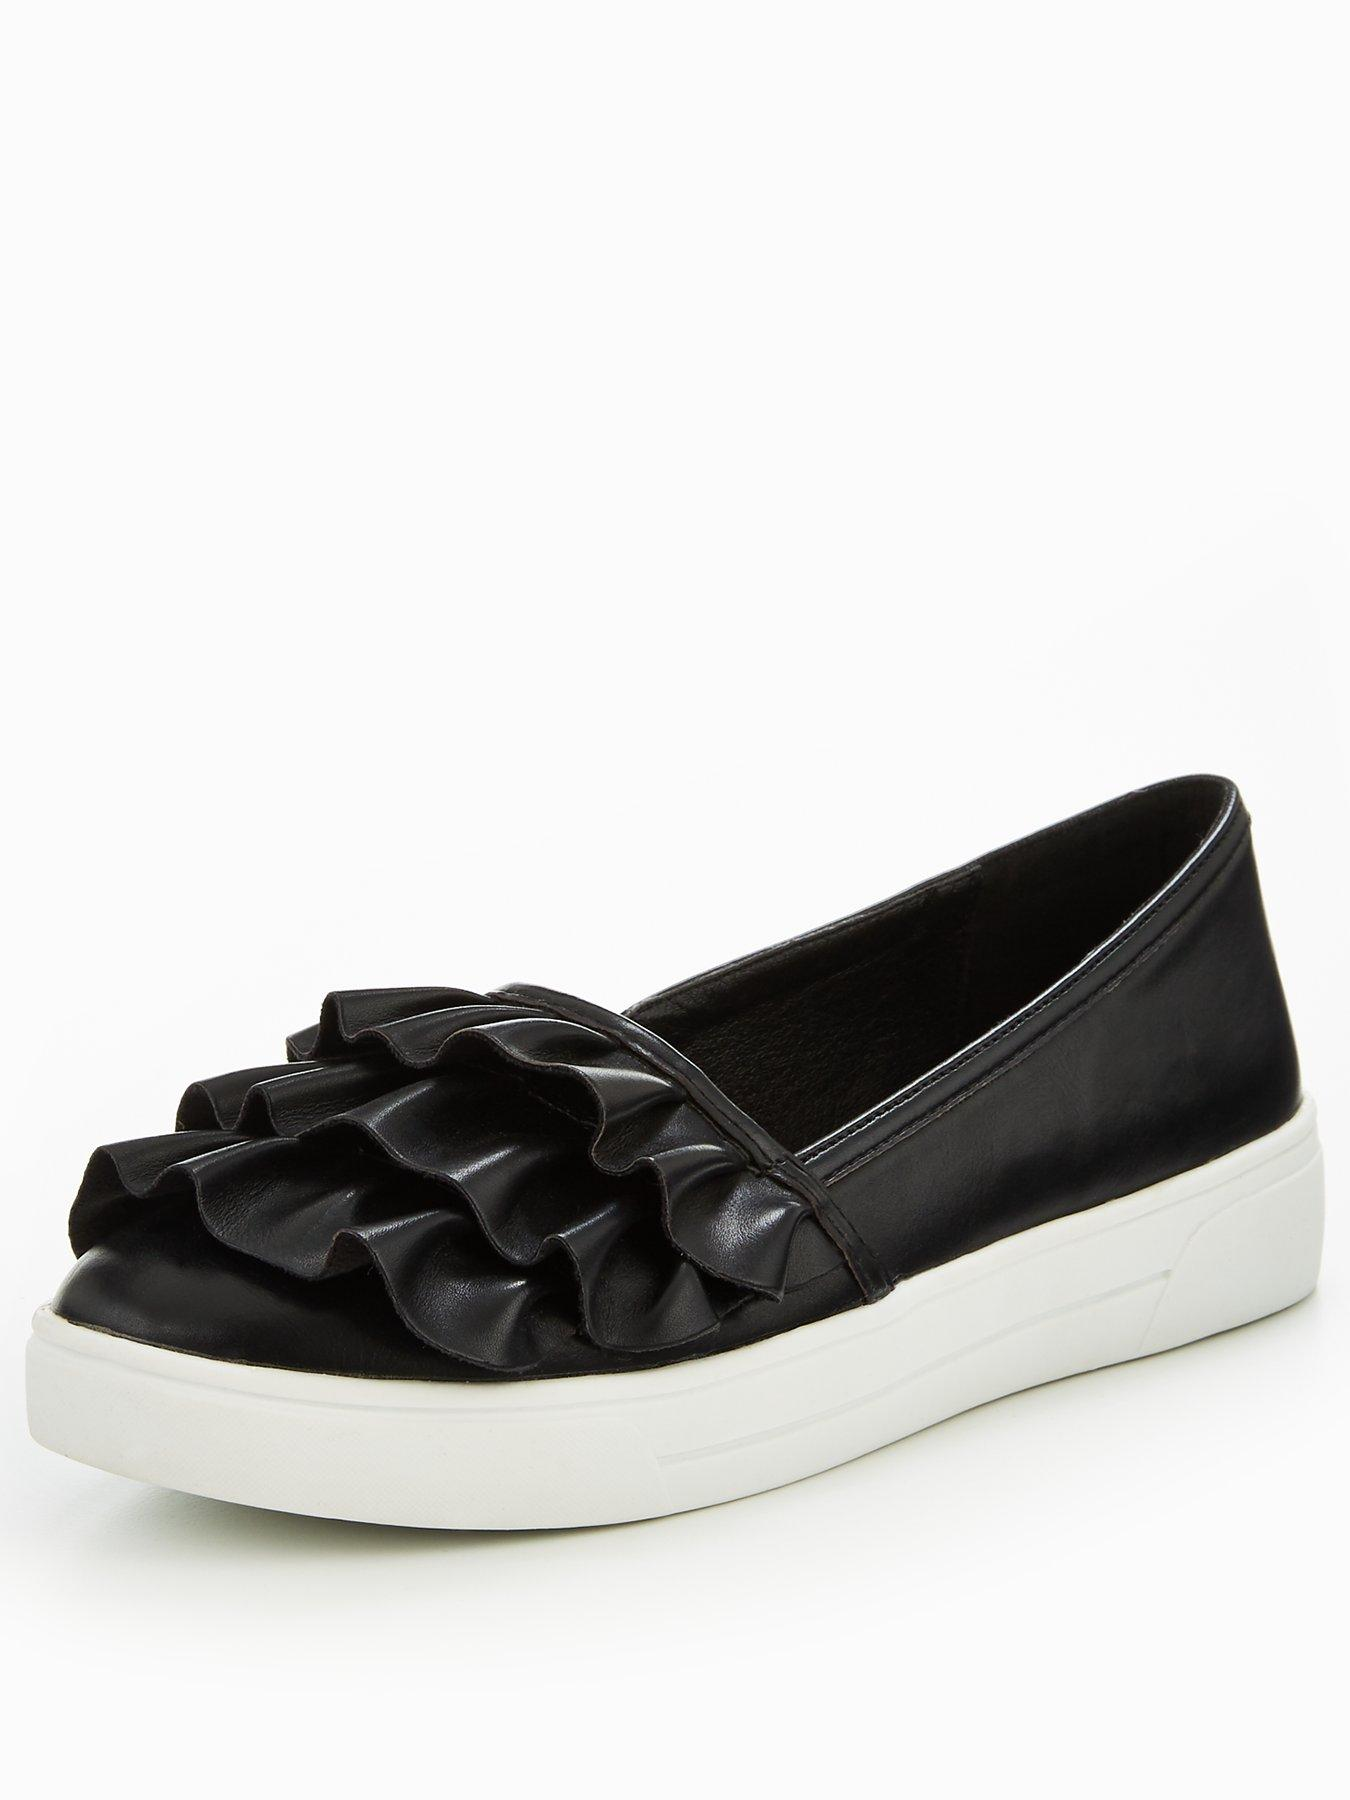 V by Very Dolly Frill Skate Shoe Black